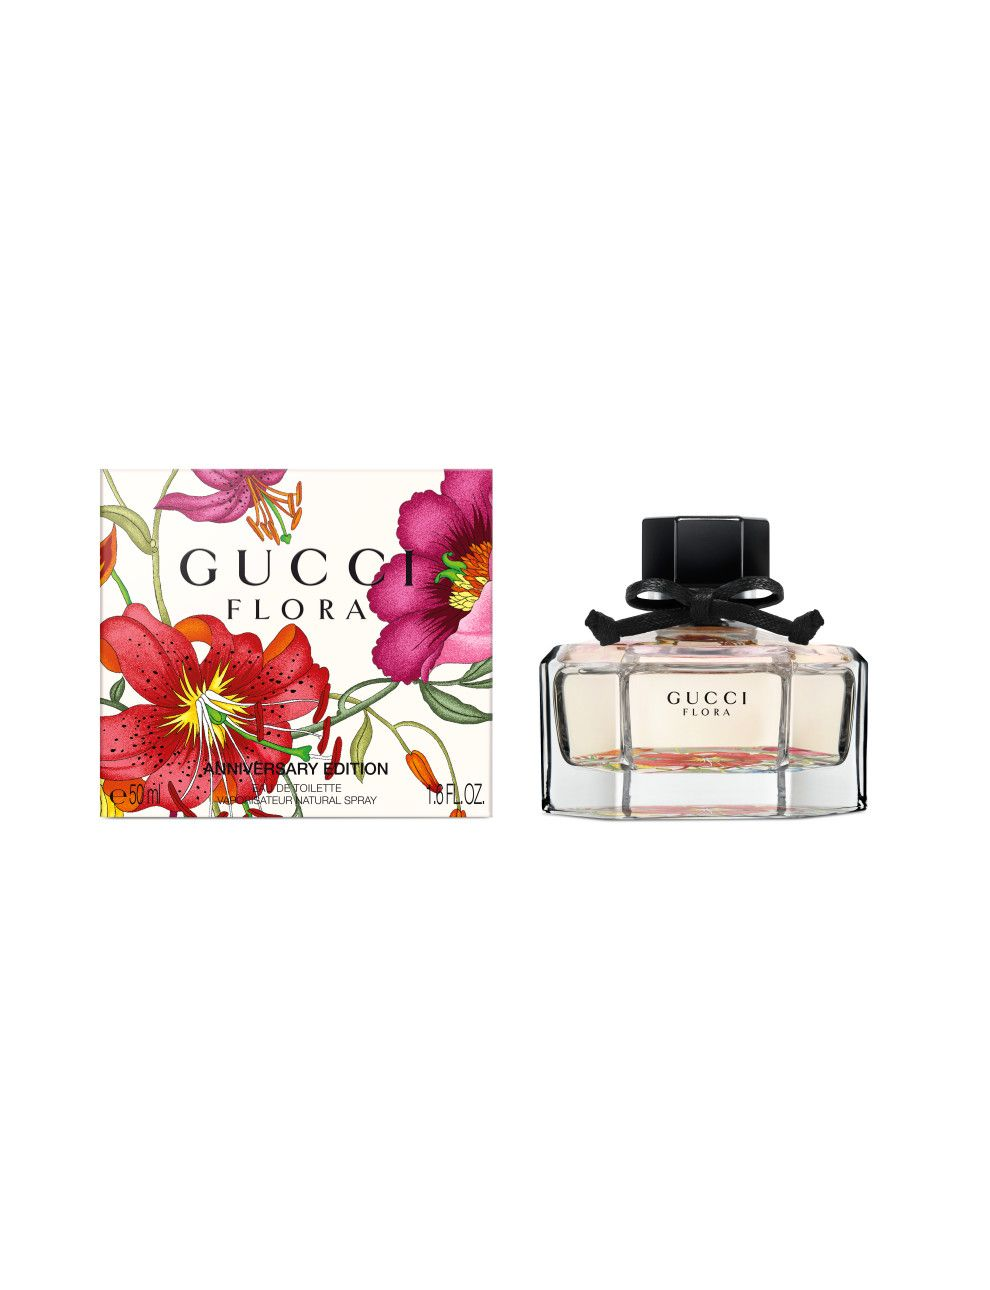 Gucci Flora Anniversary Edition 50ml Edt David Jones Inspiration